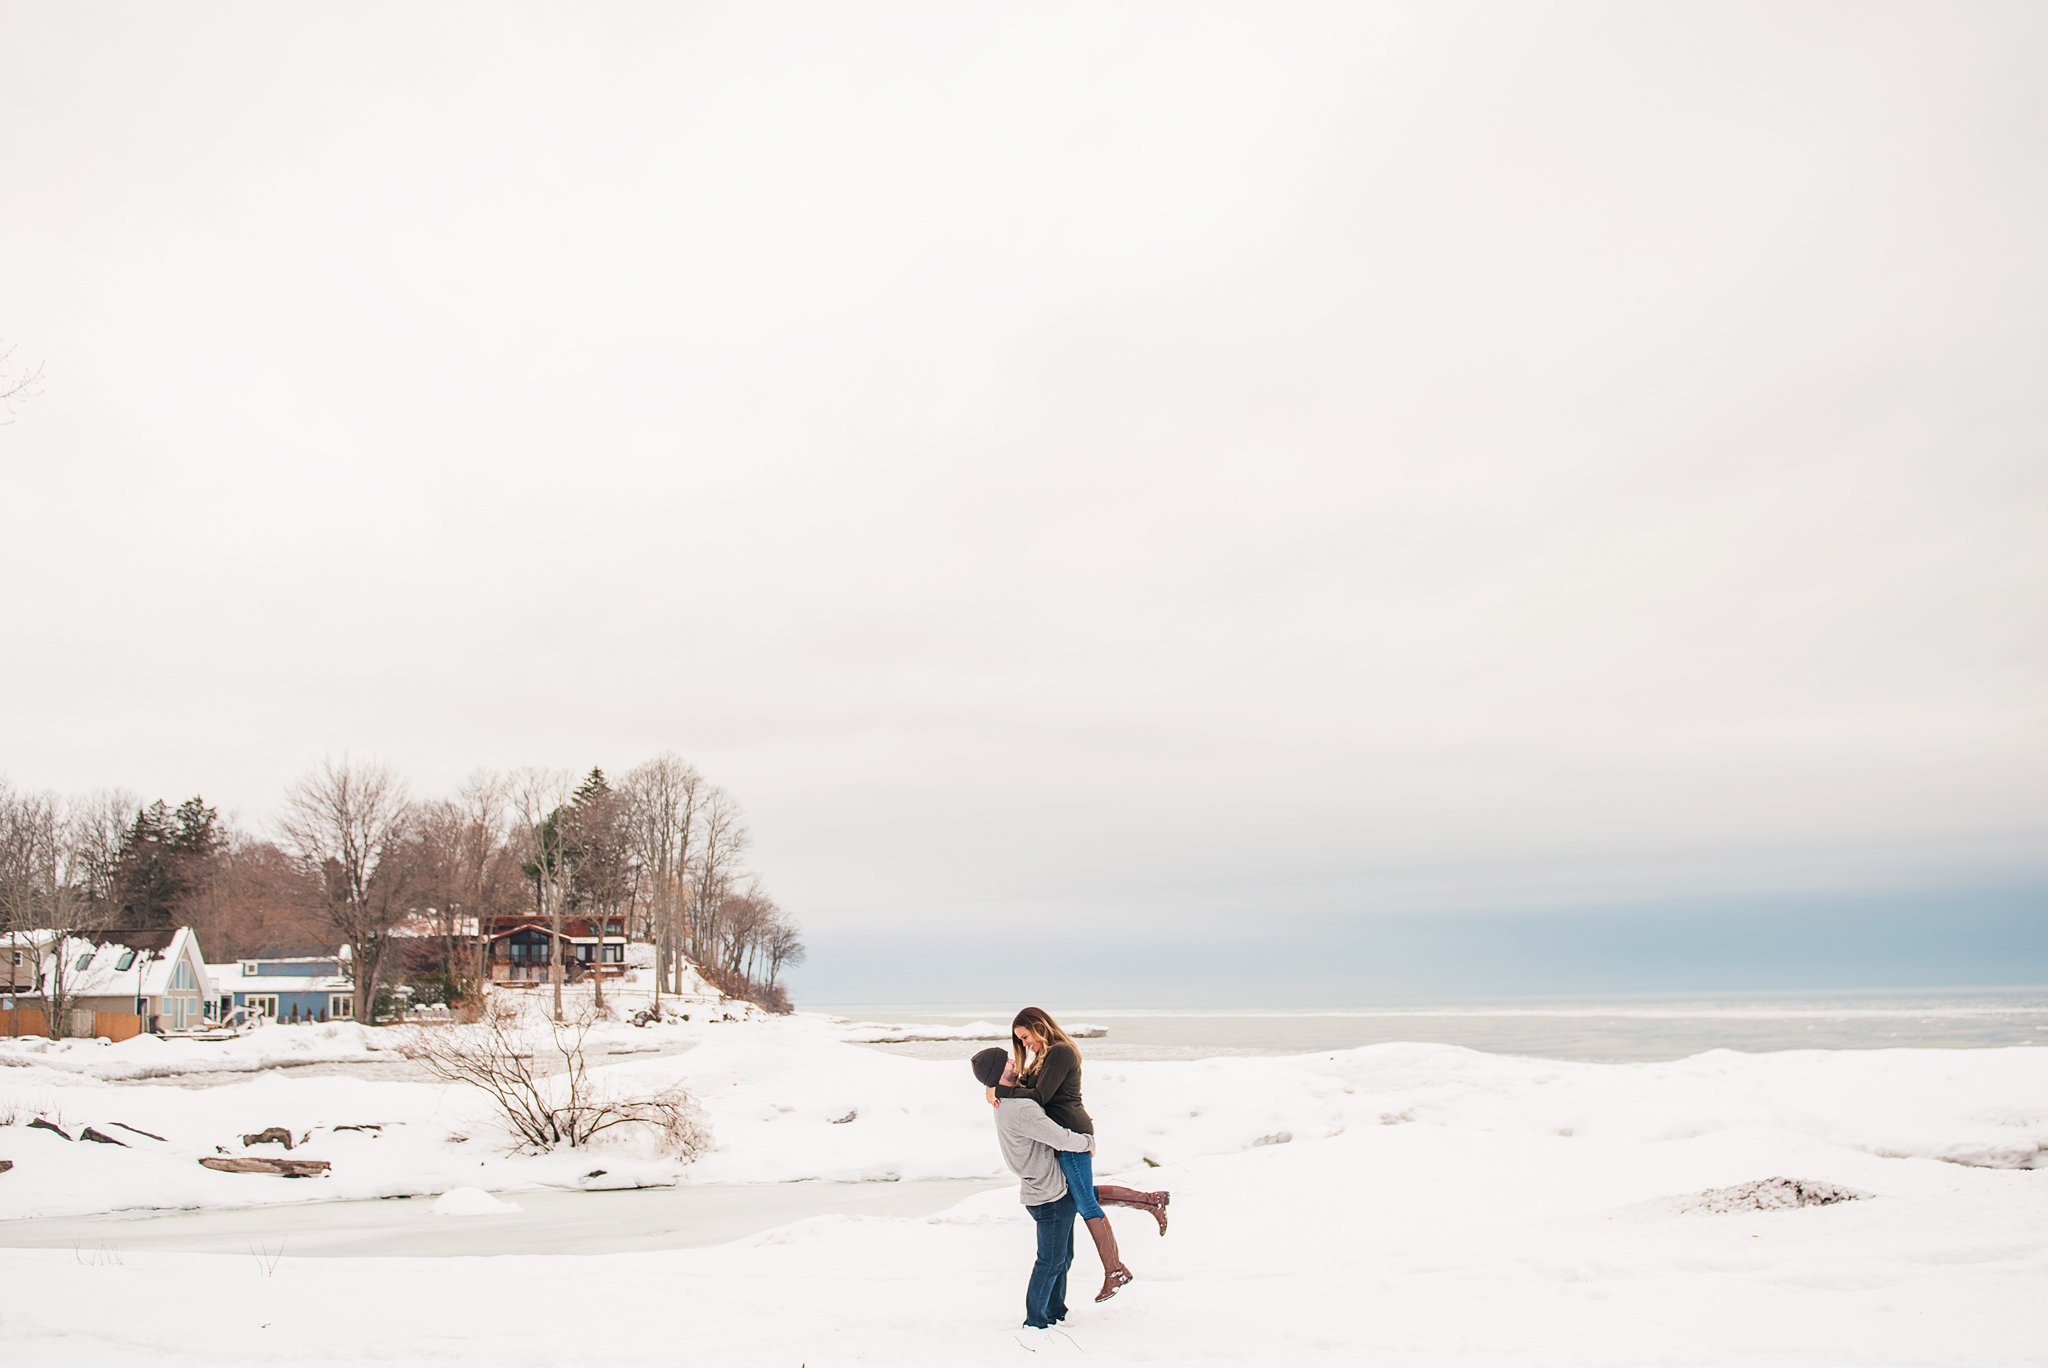 Webster_Park_Engagement_Session_Rochester_NY_photographer_DSC_6476.jpg